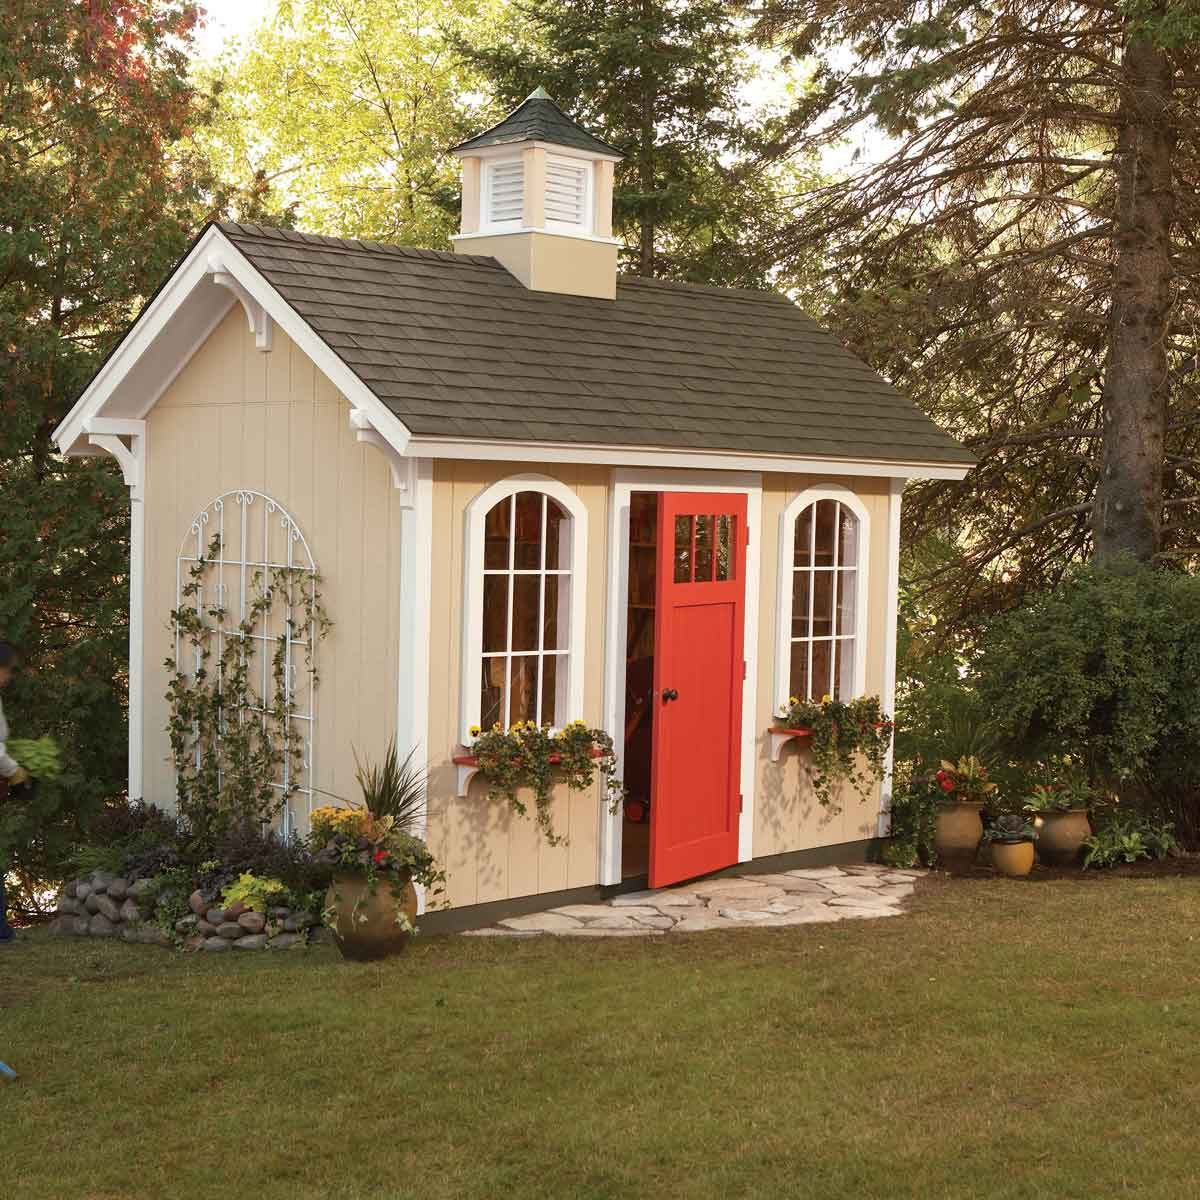 How To Build A Shed On The